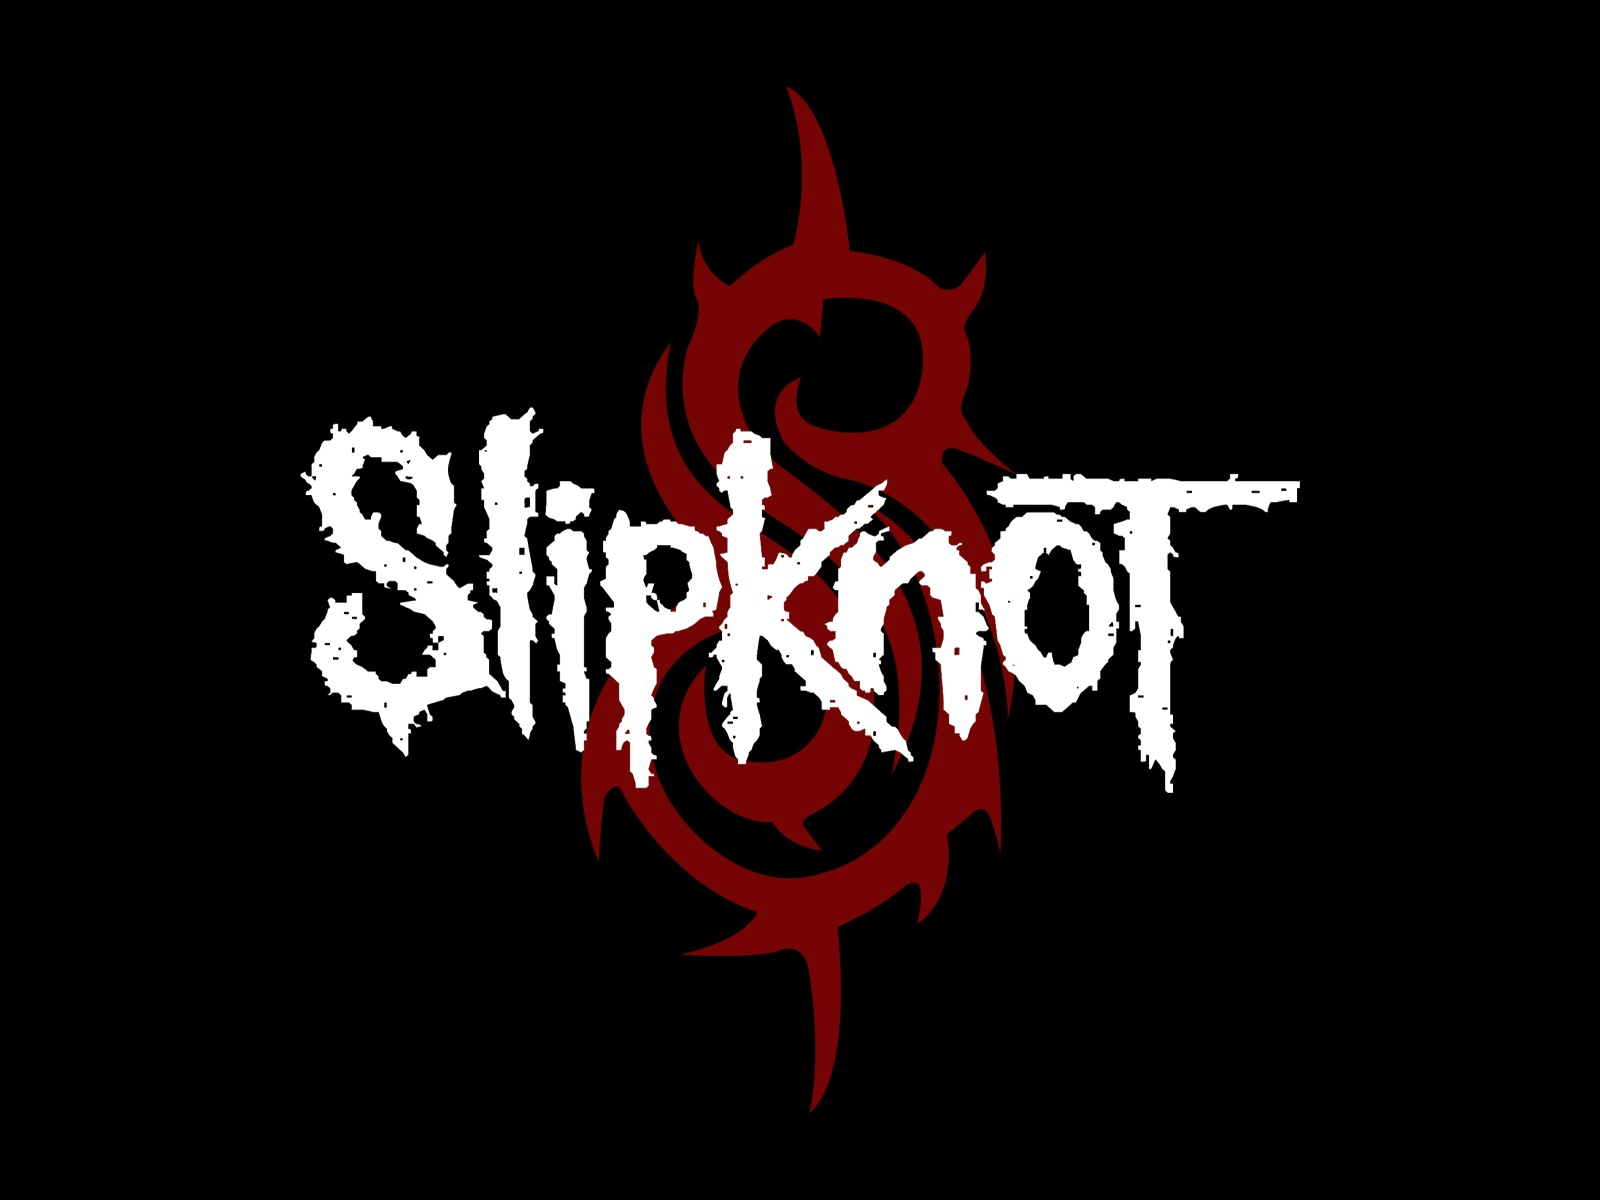 1600x1200 slipknot wallpaper wallpaper music and dance wallpapers slipknot wallpaper hd and wide wallpapers voltagebd Image collections